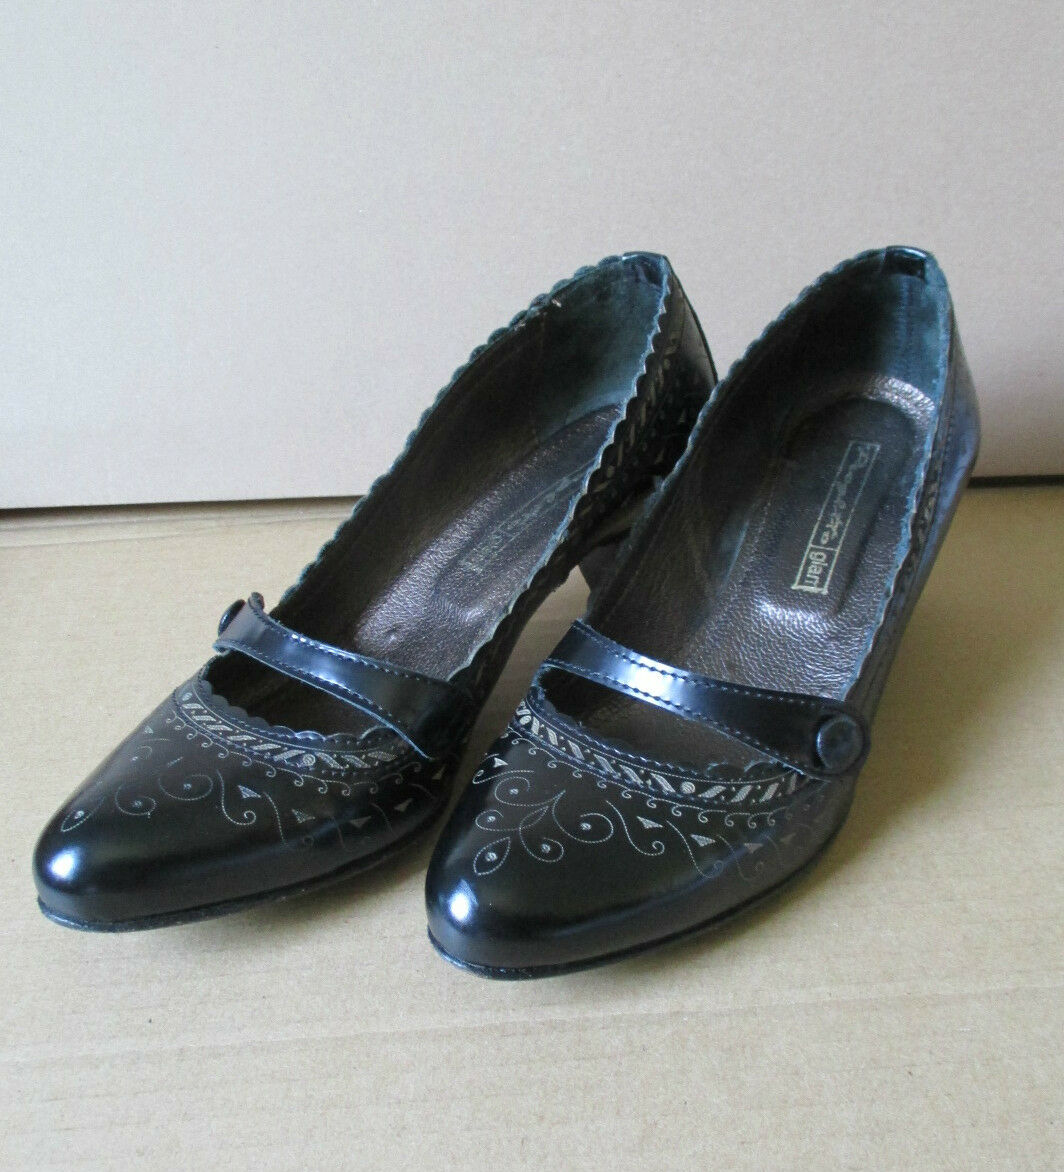 decolté Marrone scuro Progetto MADE IN ITALY 100% pelle Mary Jane CLARKS